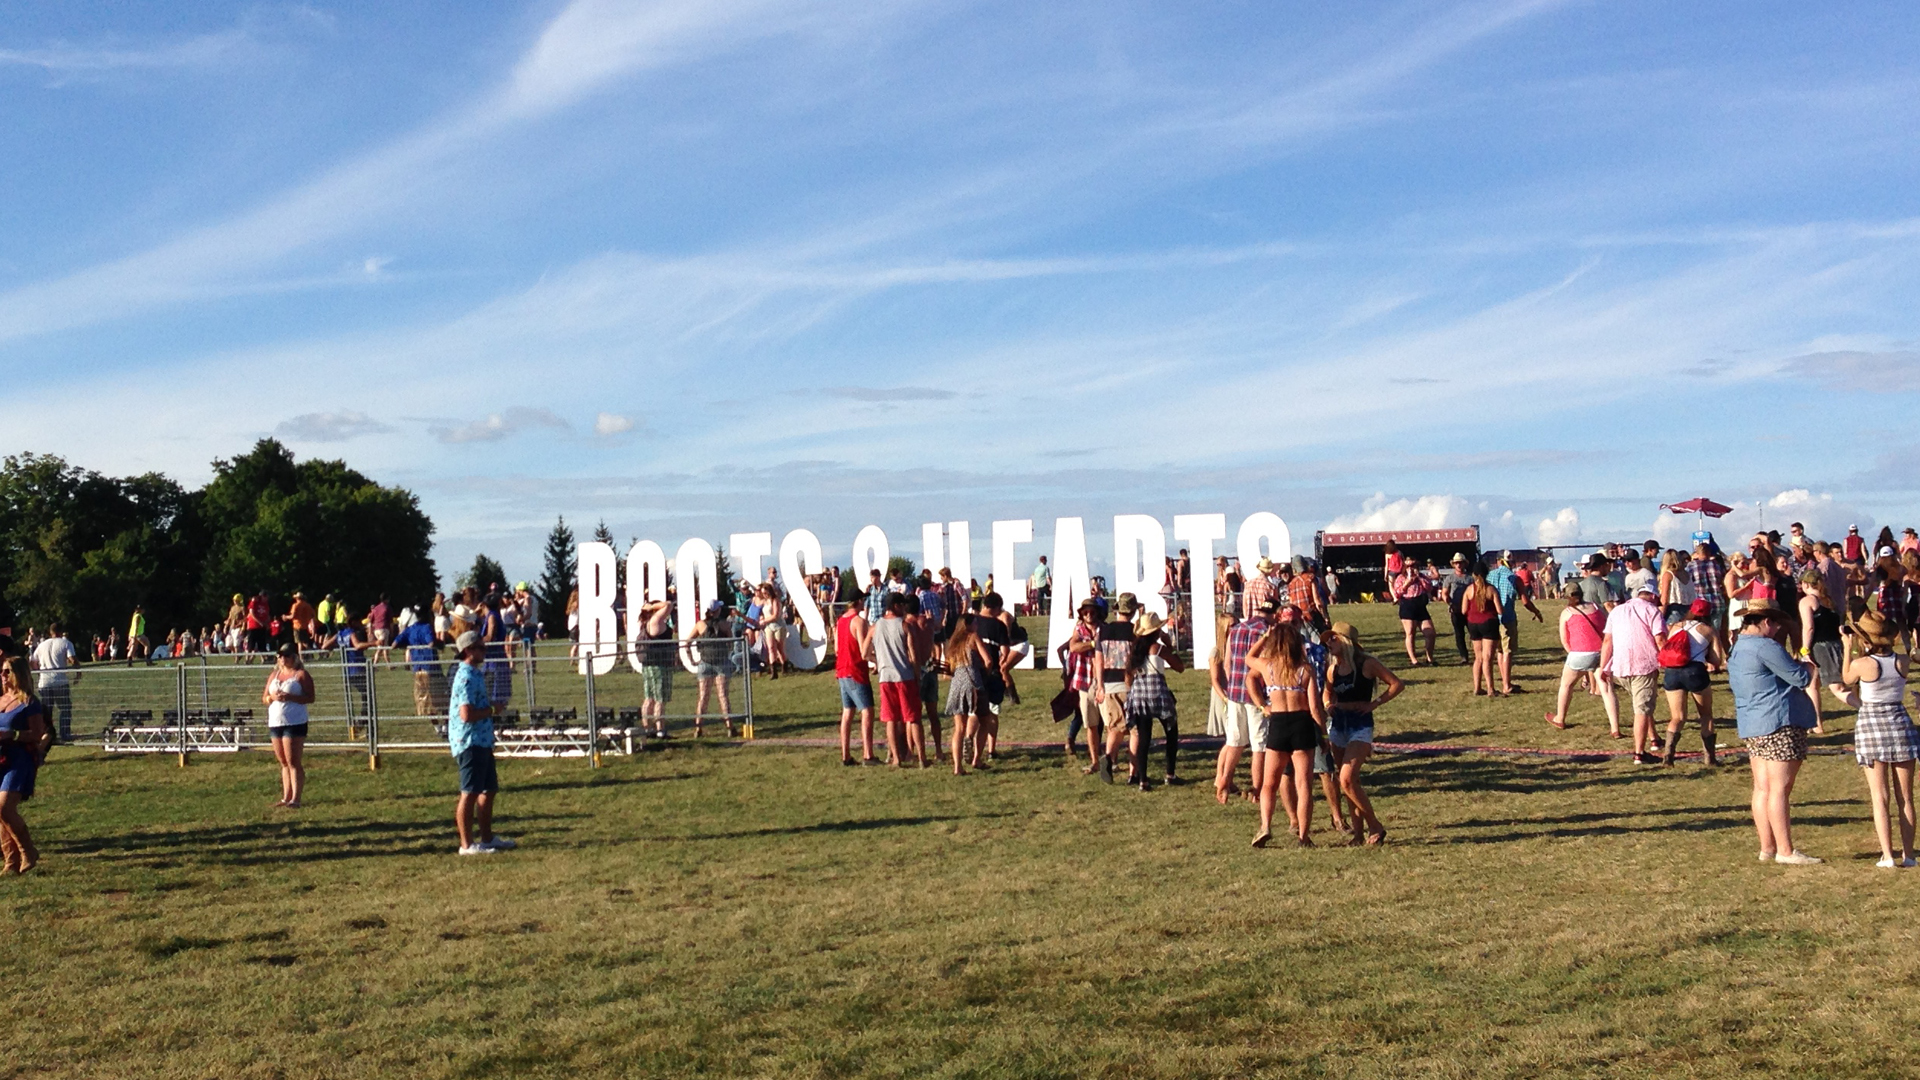 boots and heartss - Boots and Hearts Survival Guide